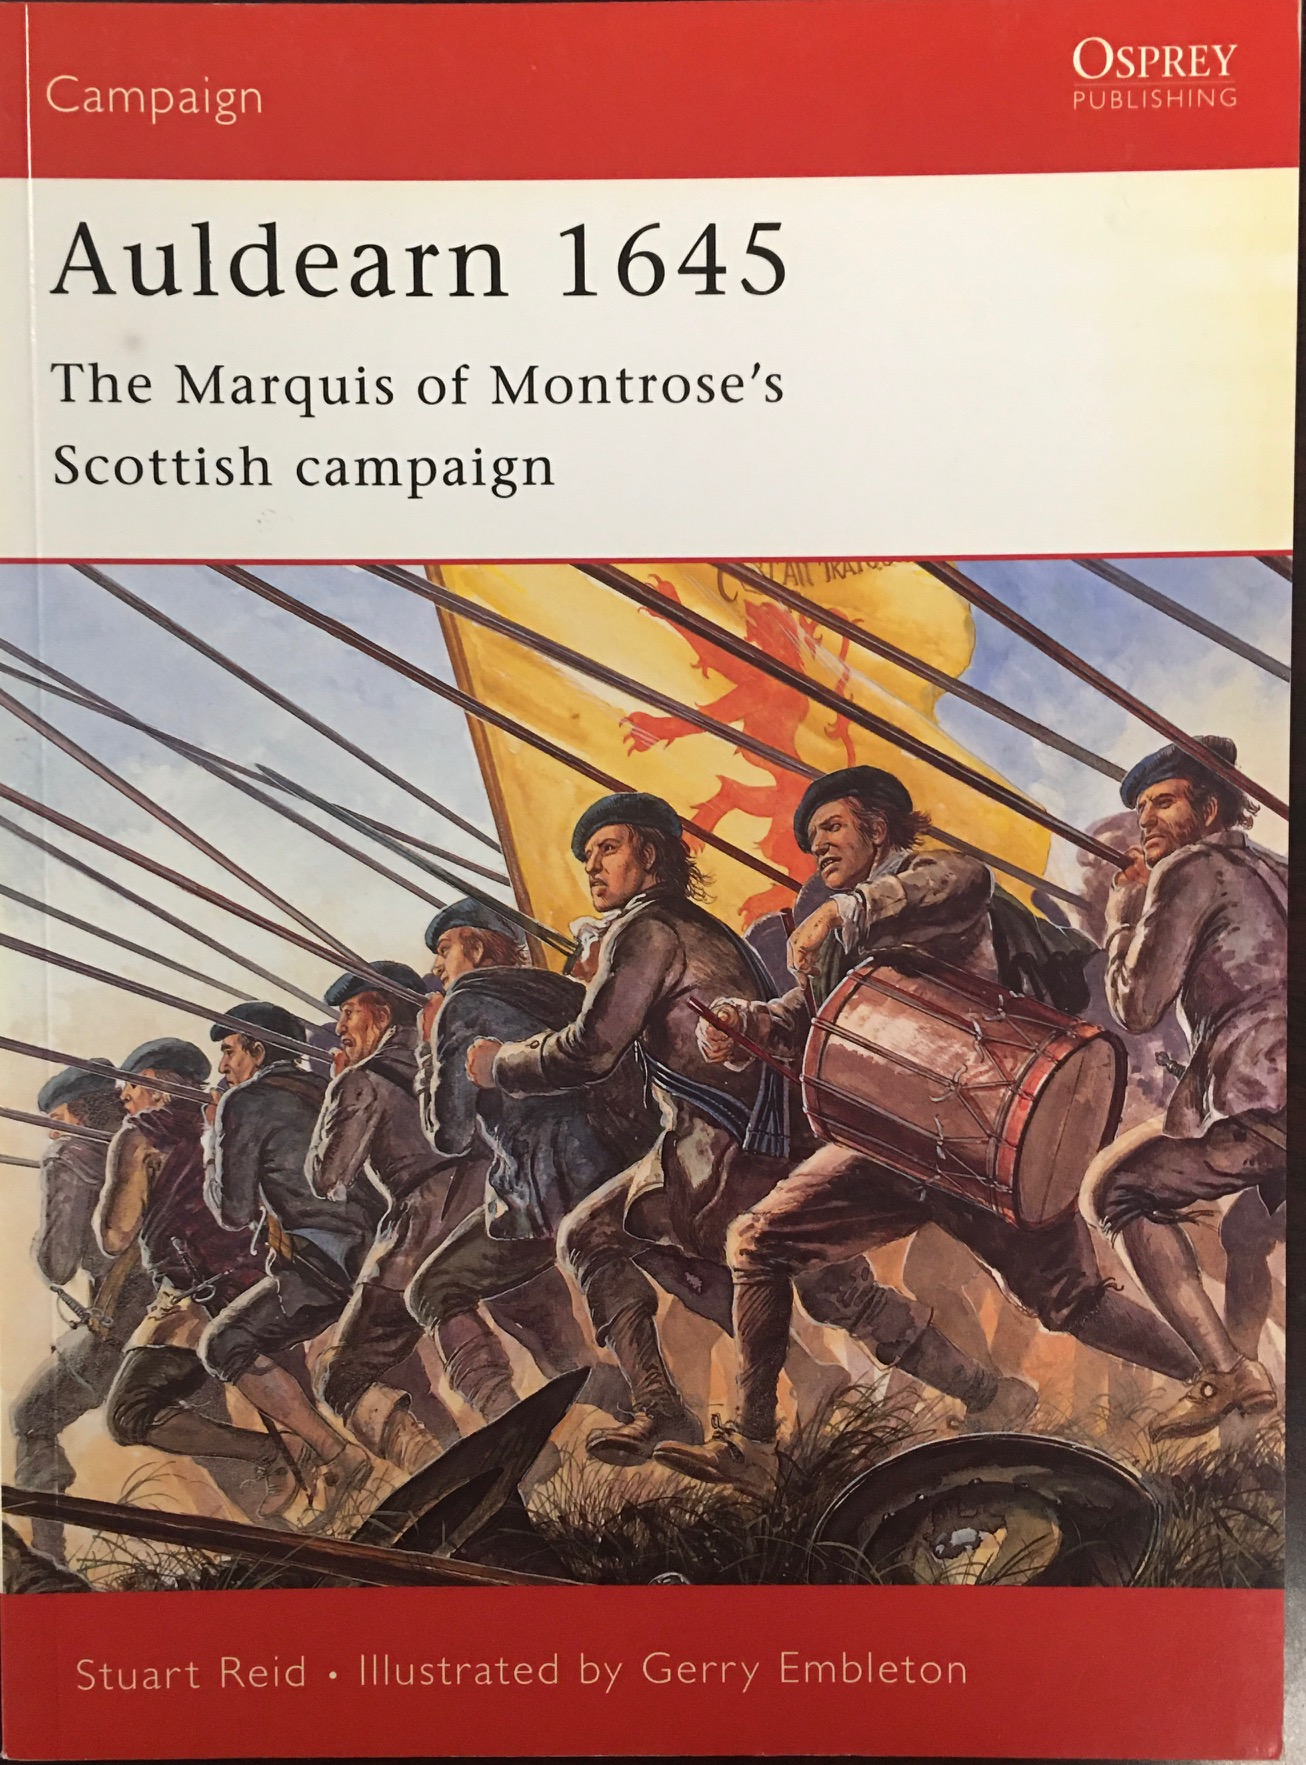 Image for Auldearn 1645: The Marquis of Montroses Scottish campaign